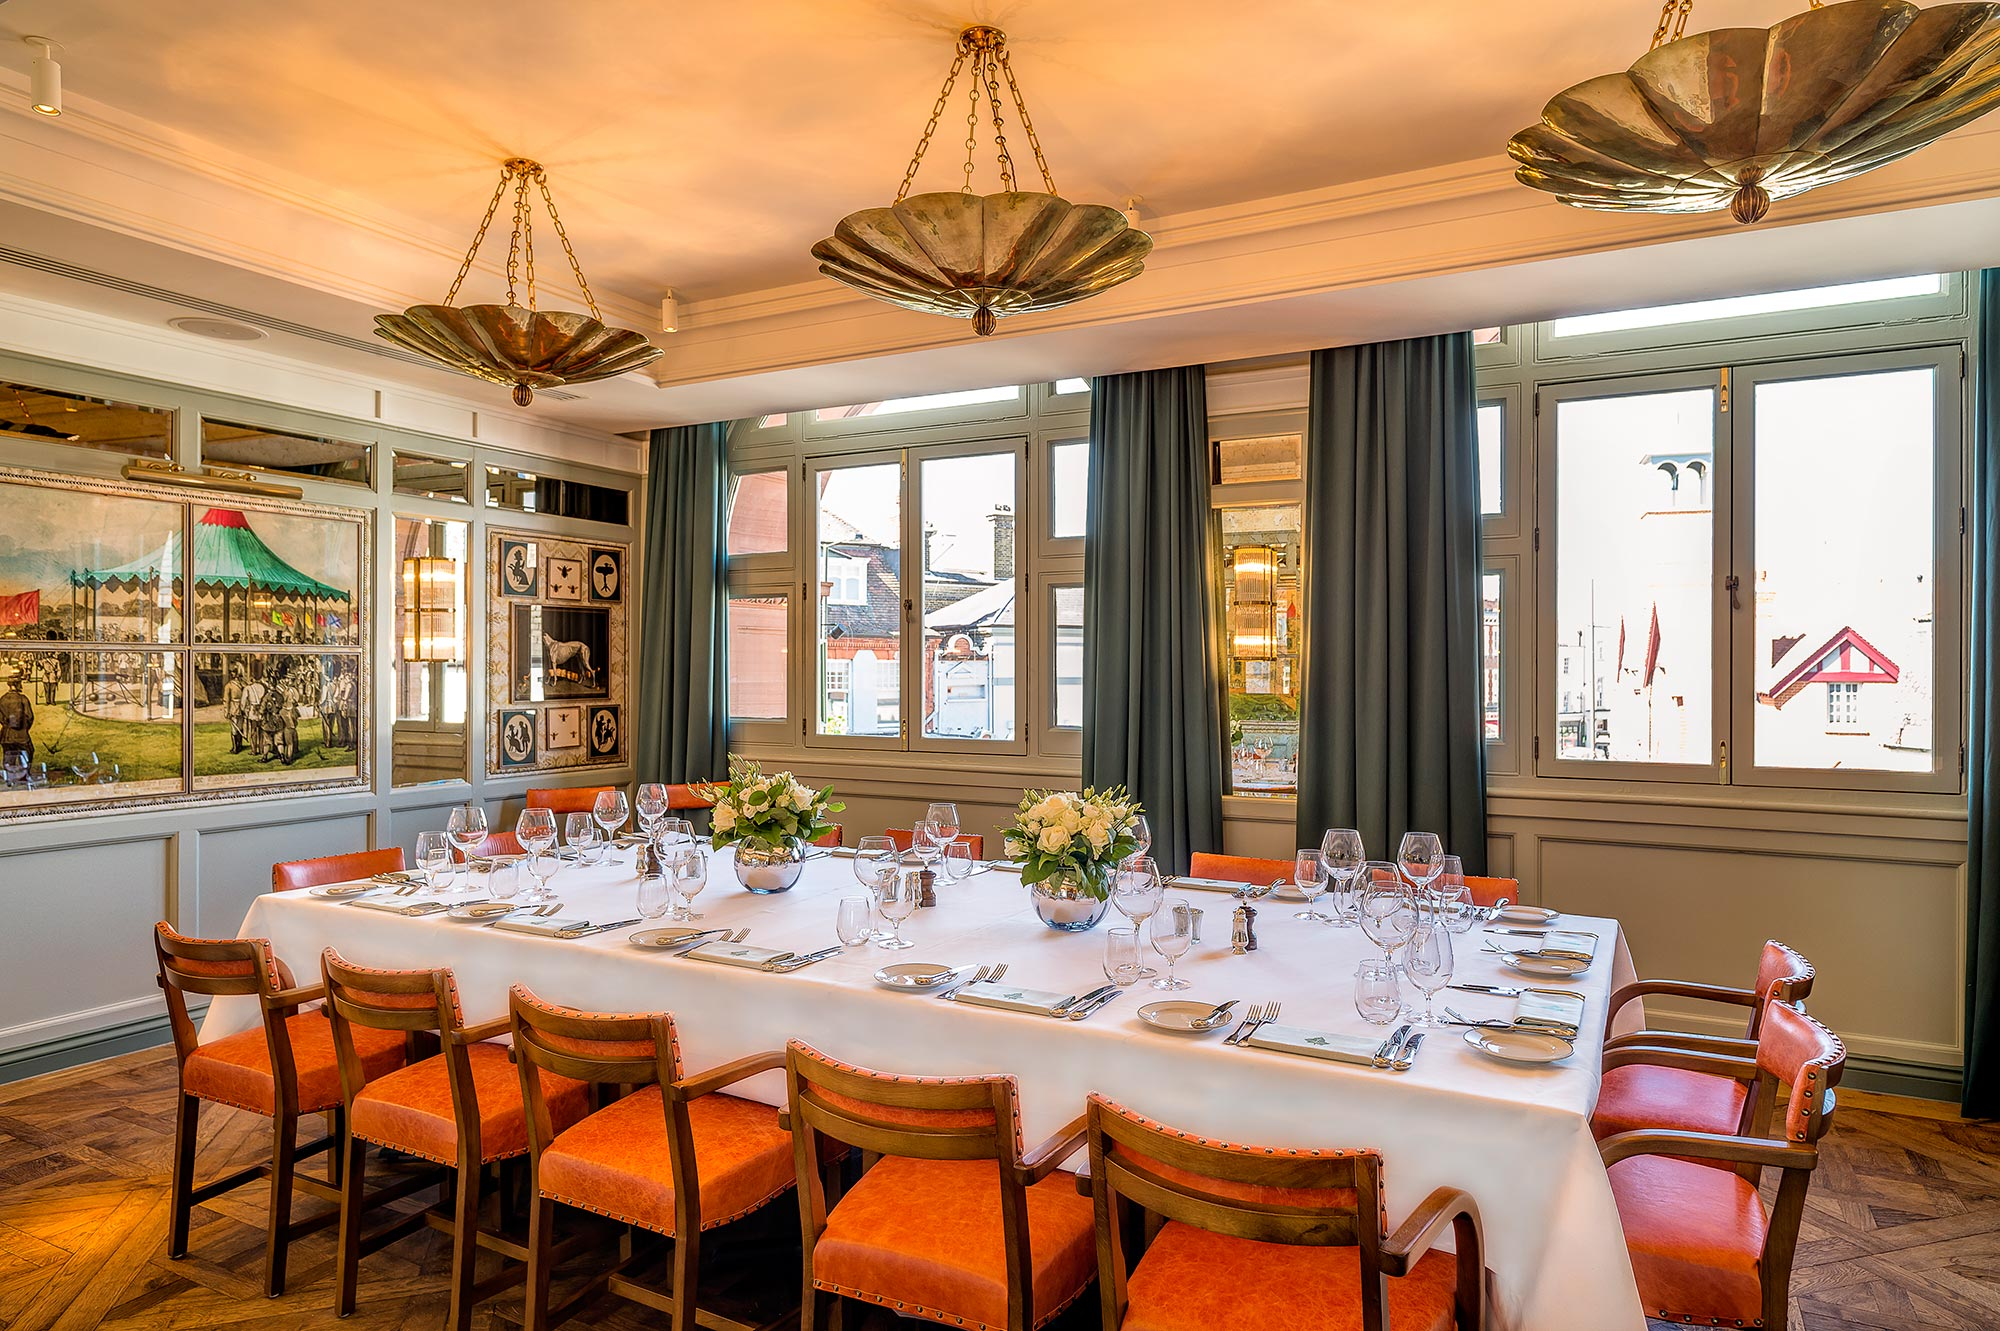 Private Dining Room - The Ivy Cafe Wimbledon - The Ivy Cafe Wimbledon